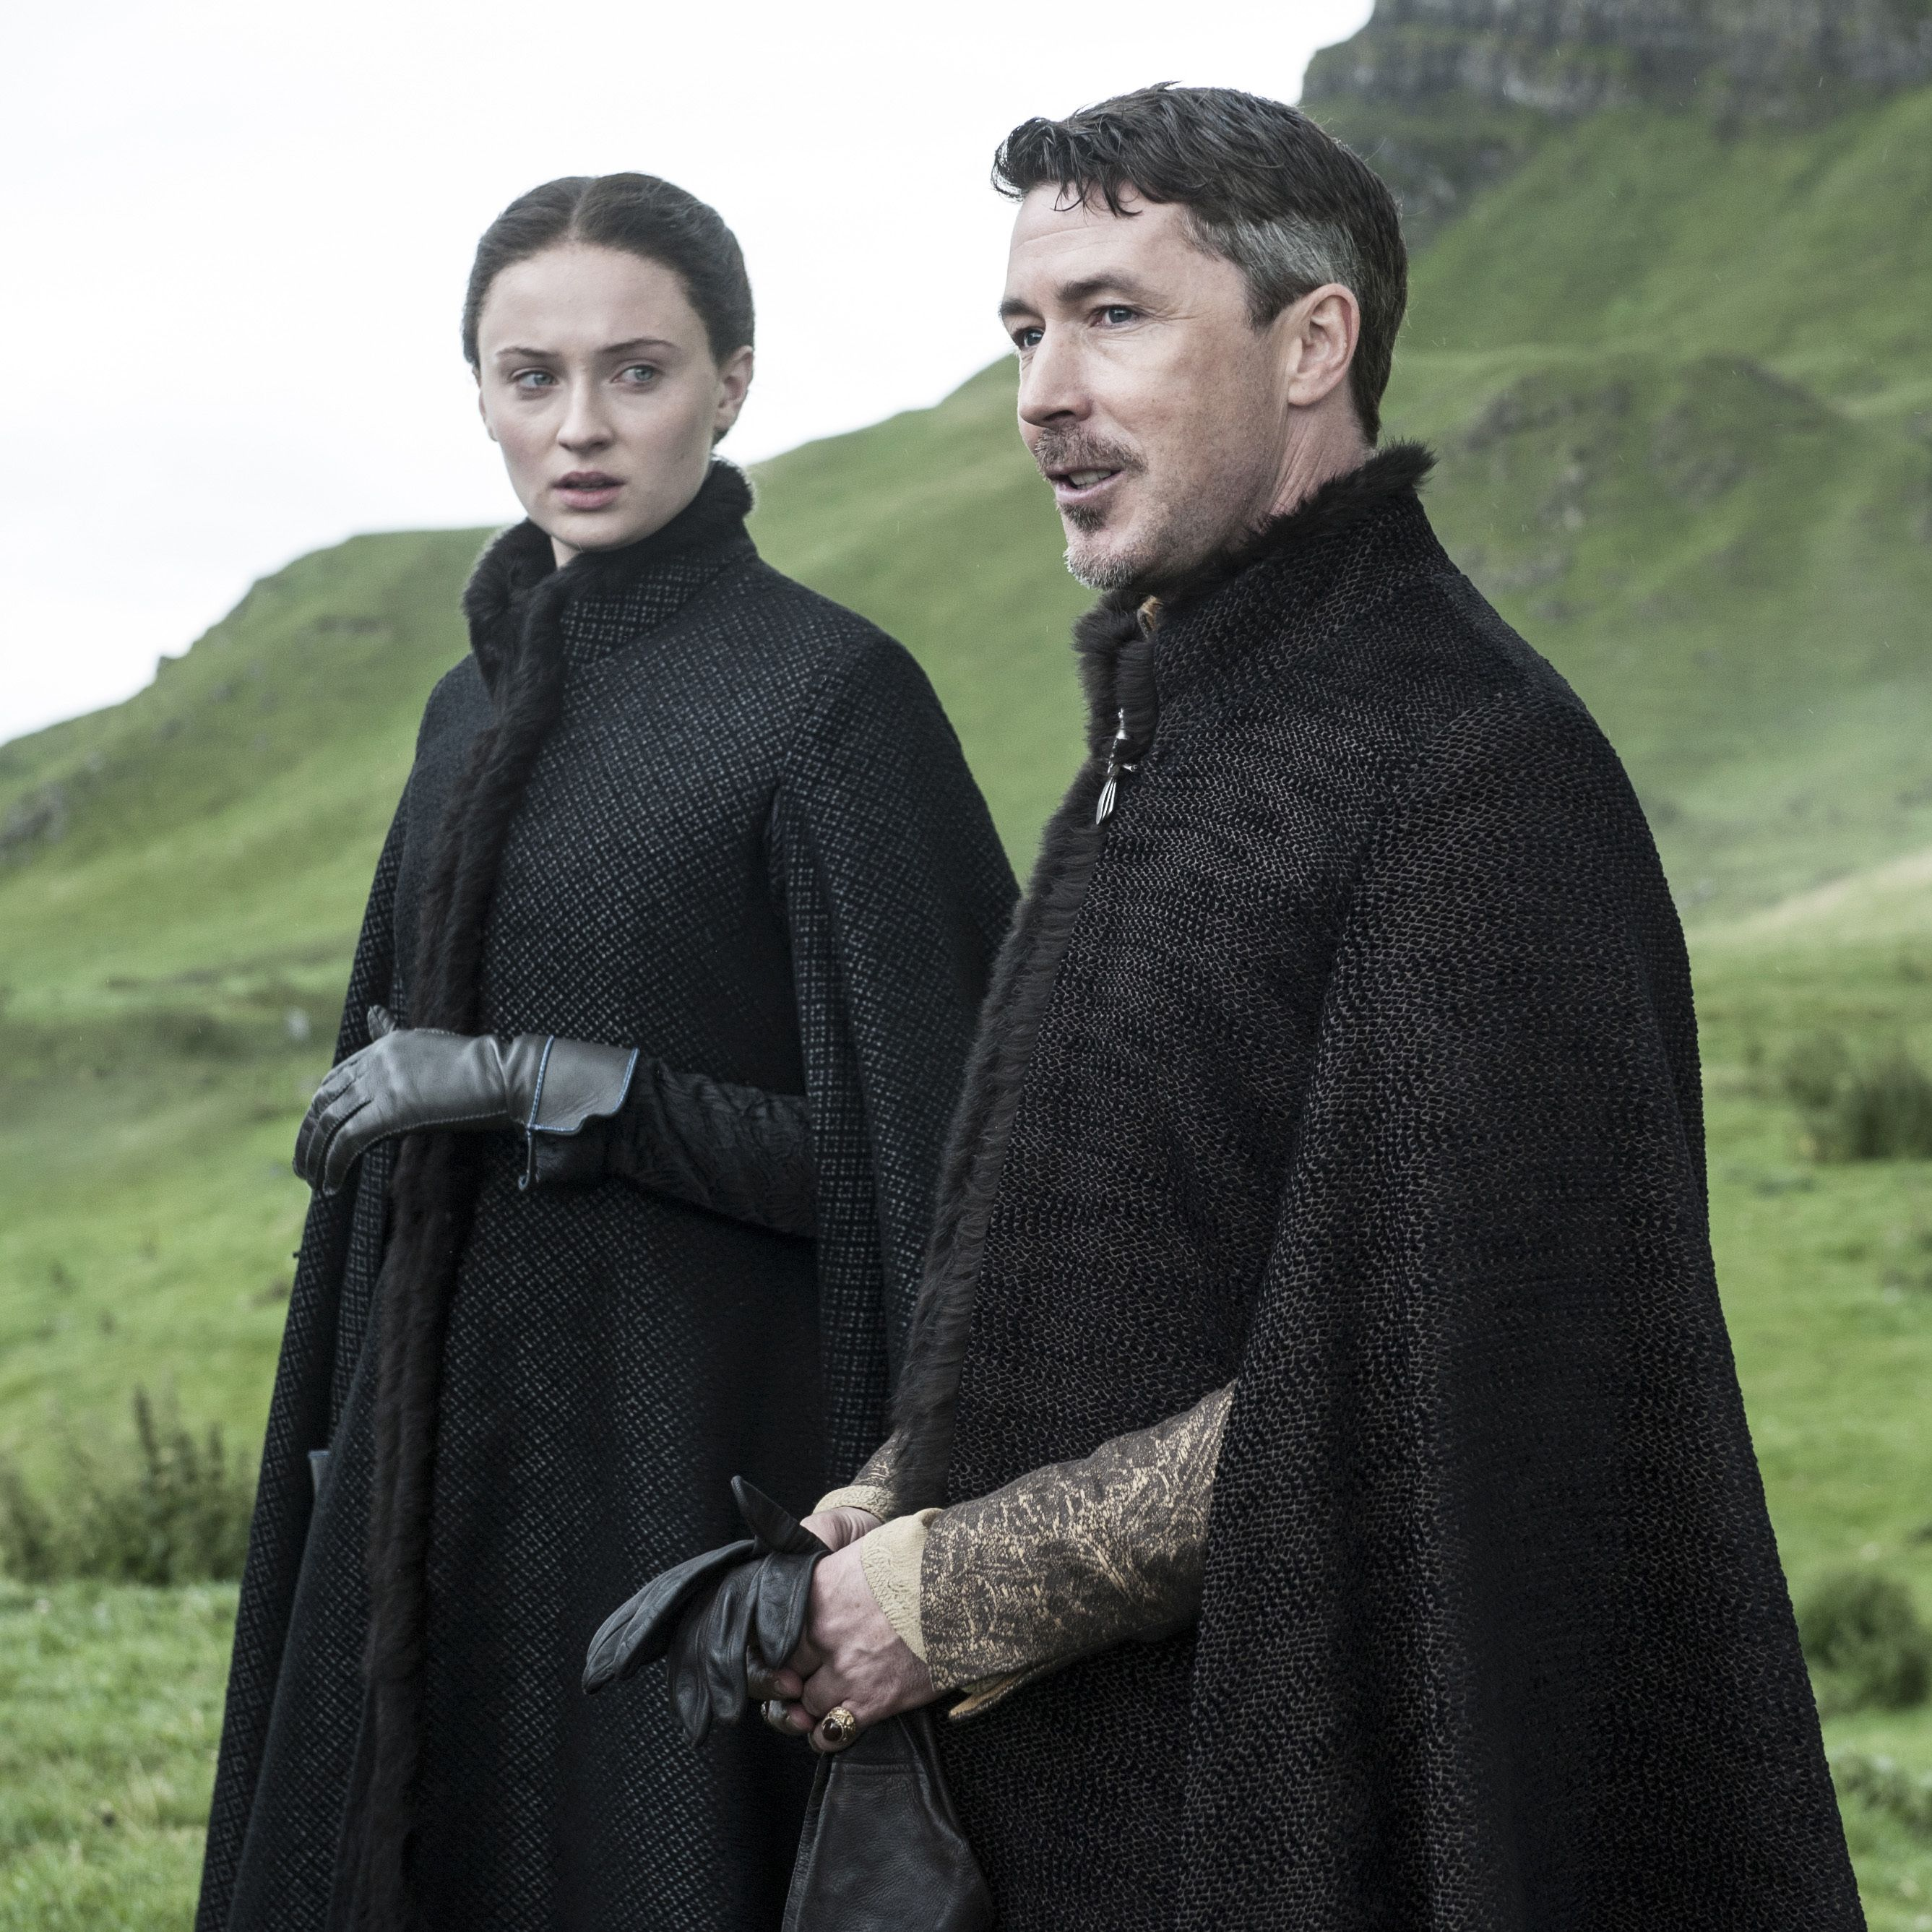 'Game of Thrones' Actor Aidan Gillen Says It's Possible No One Will Win the Iron Throne